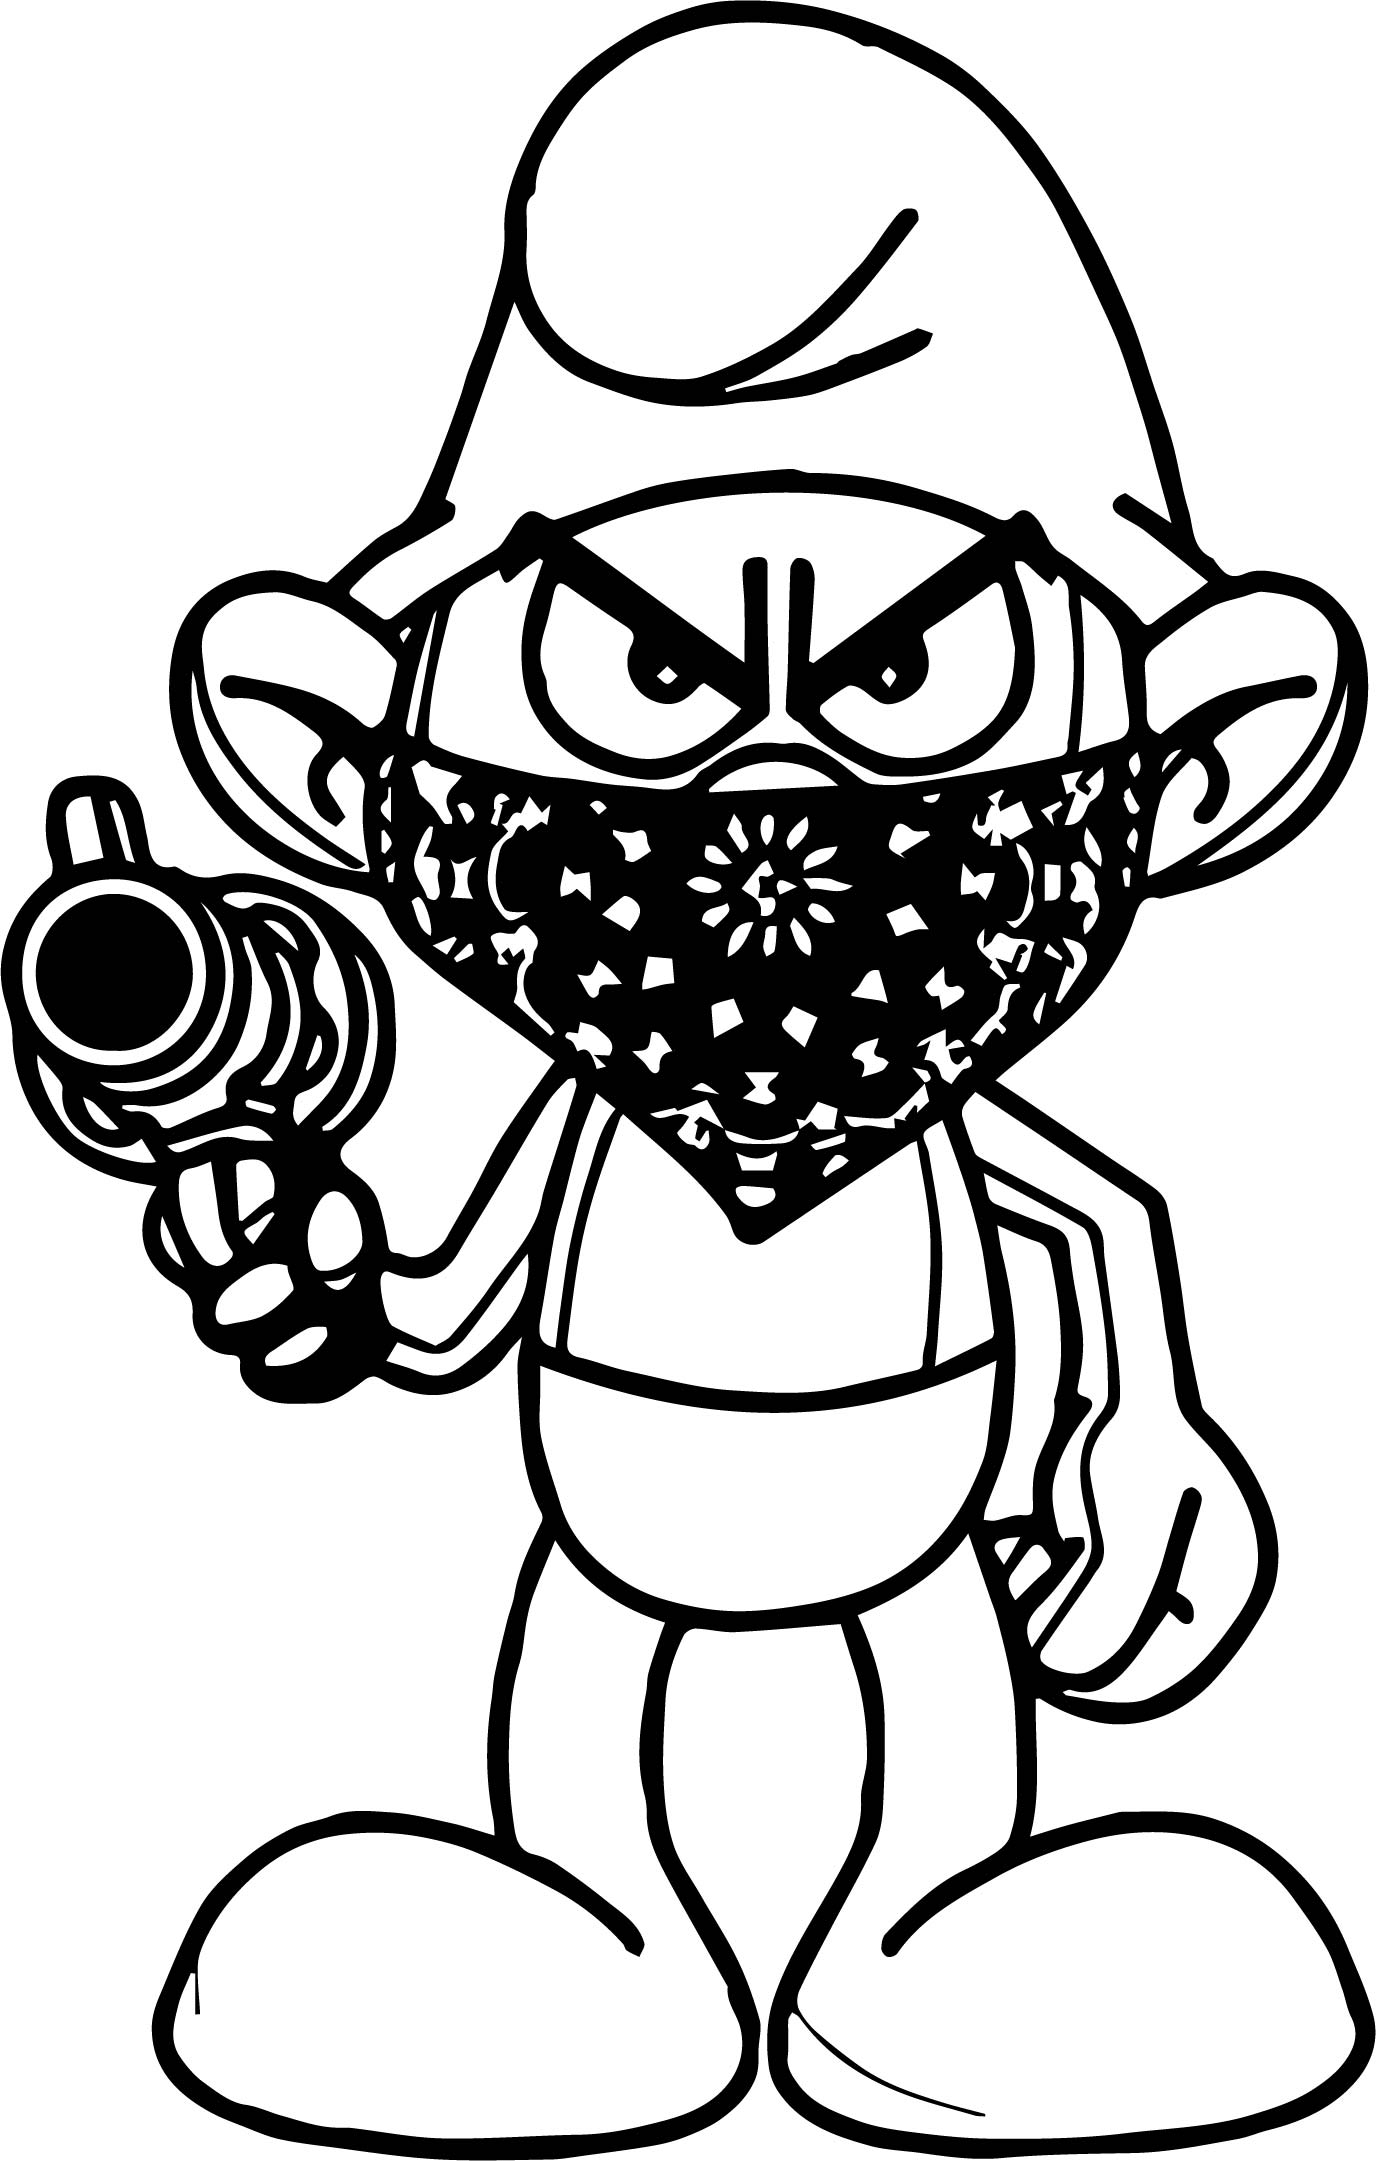 coloring pages of a gangster - photo#19